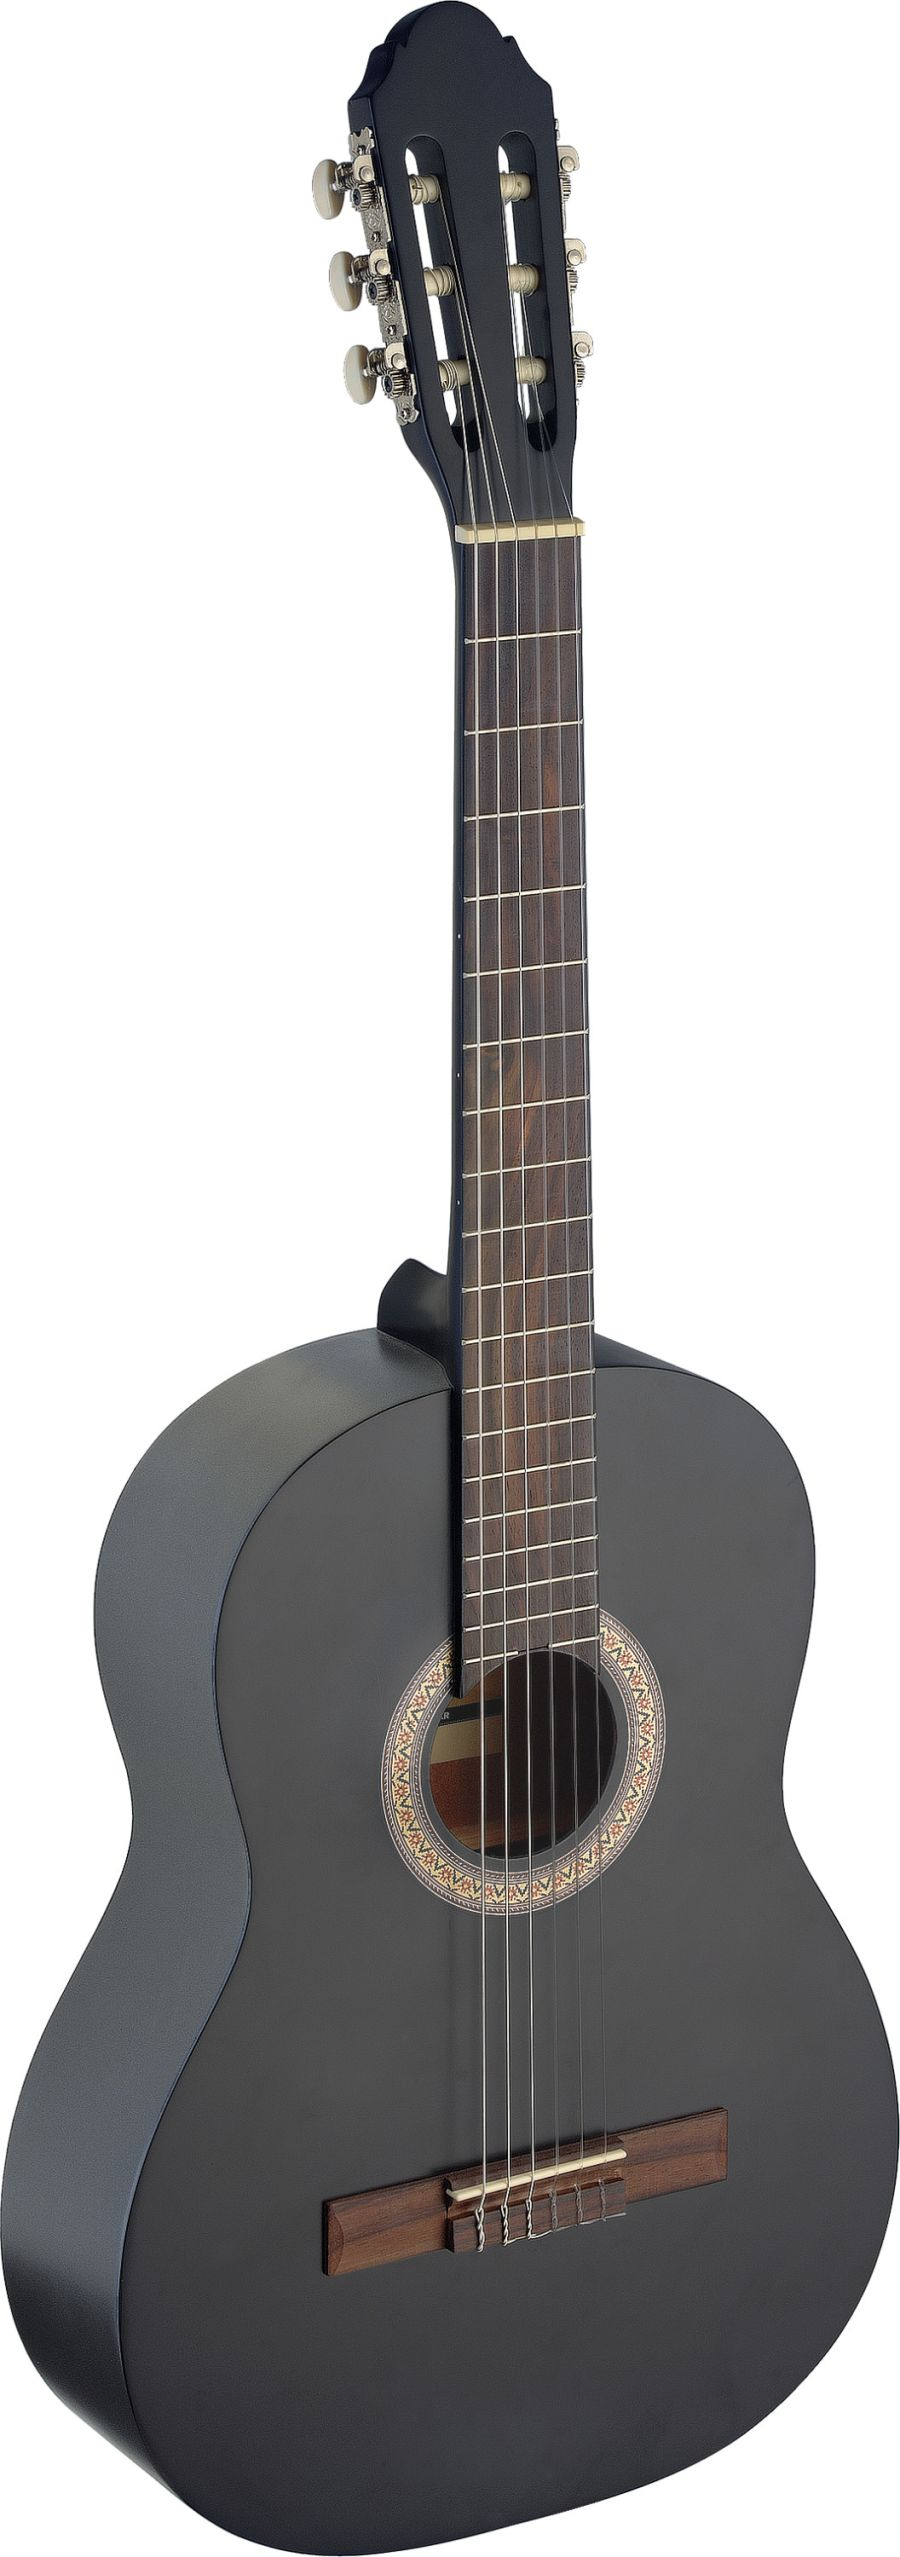 Stagg C400 Series Classical Guitar - Black